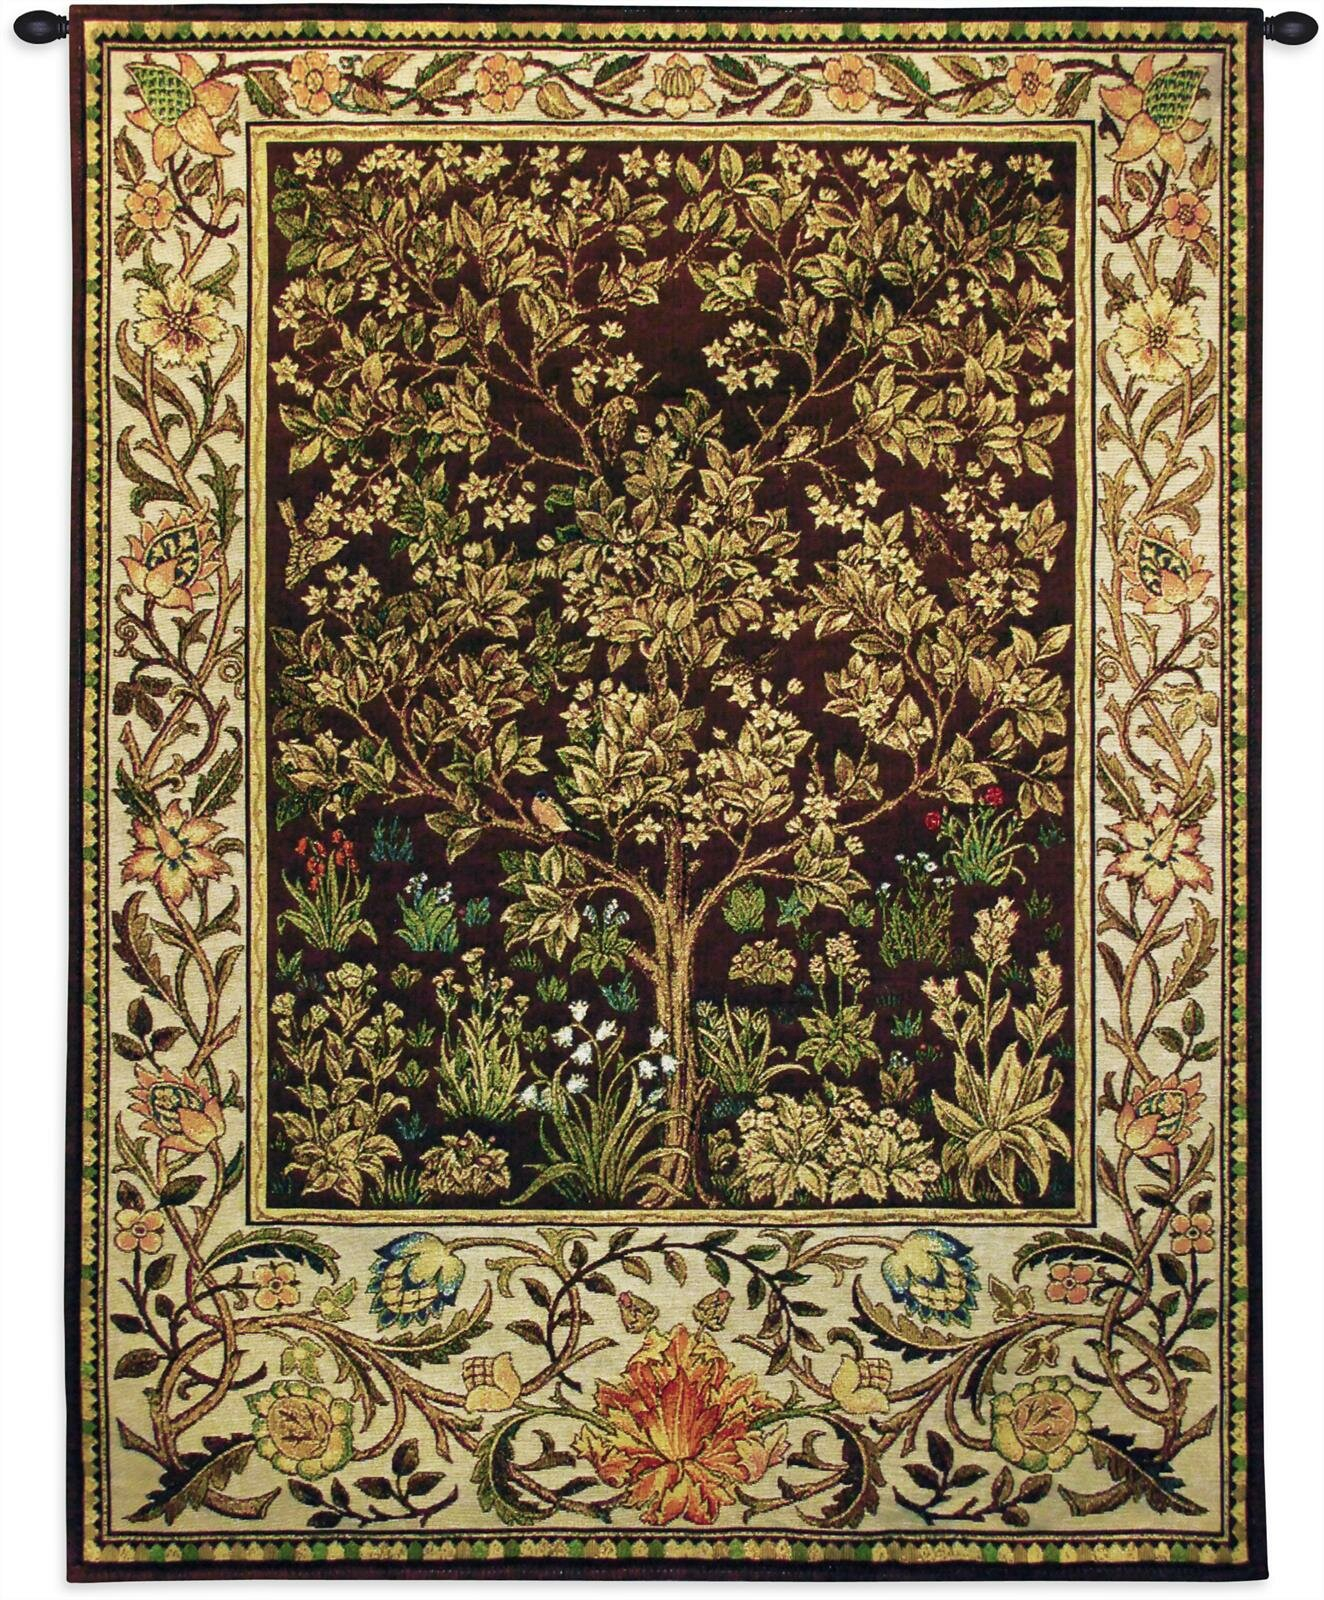 Tree Of Life Umber Bw Tapestry With Current Blended Fabric Bellagio Scalinata Wall Hangings (View 9 of 20)